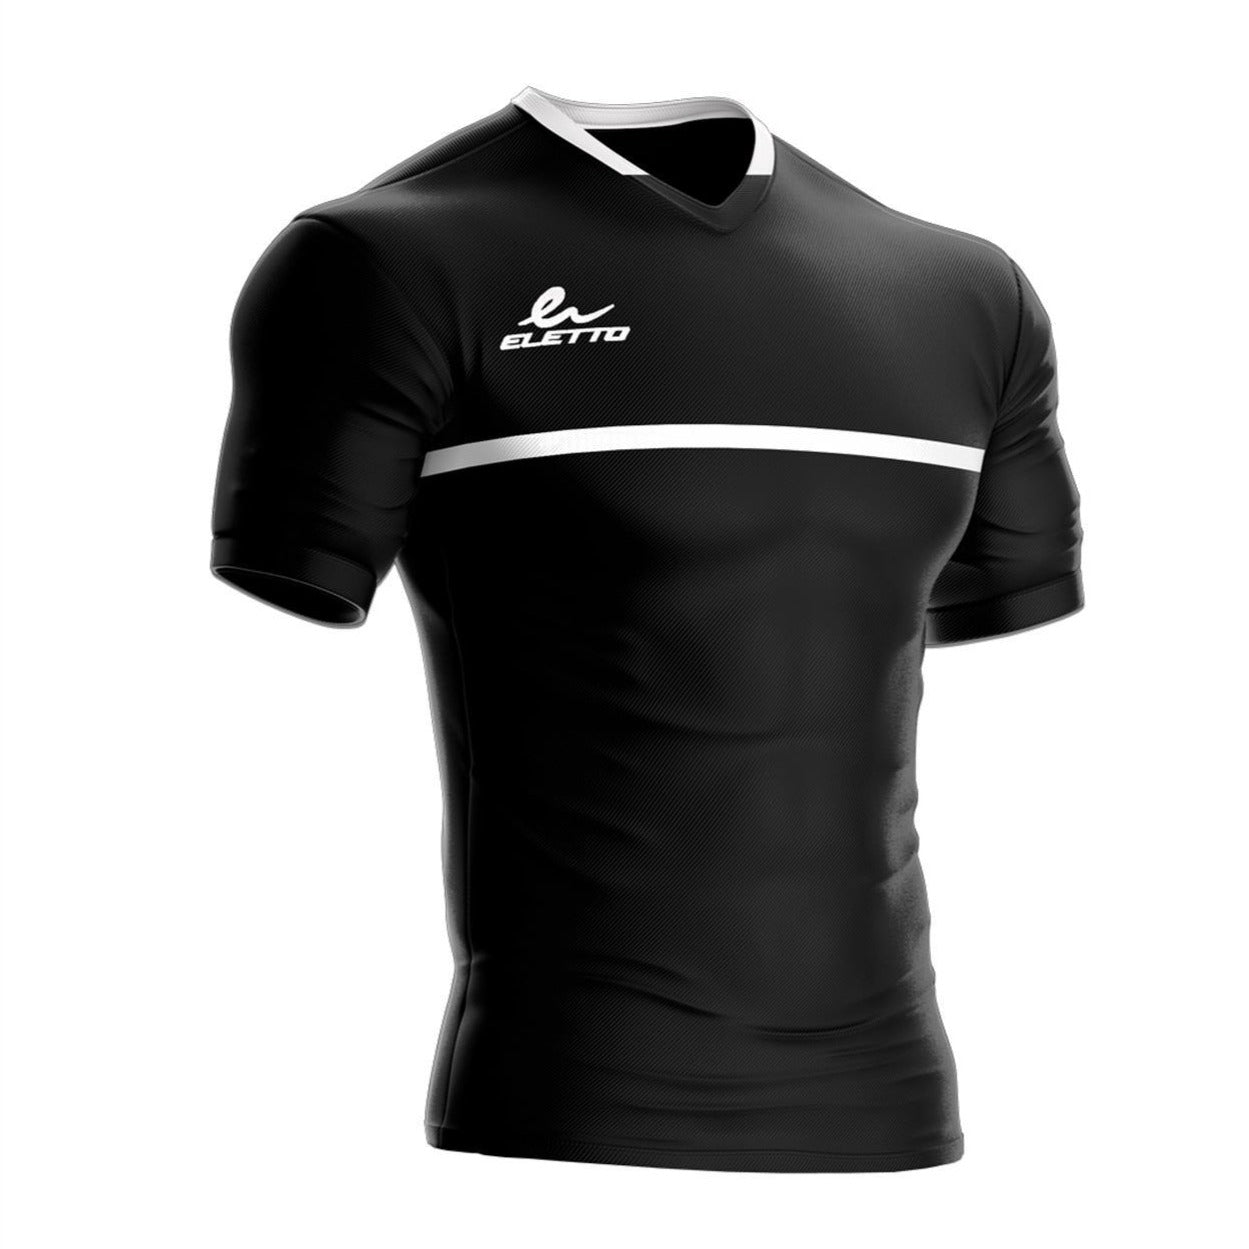 Eletto Deportivo Youth Jersey